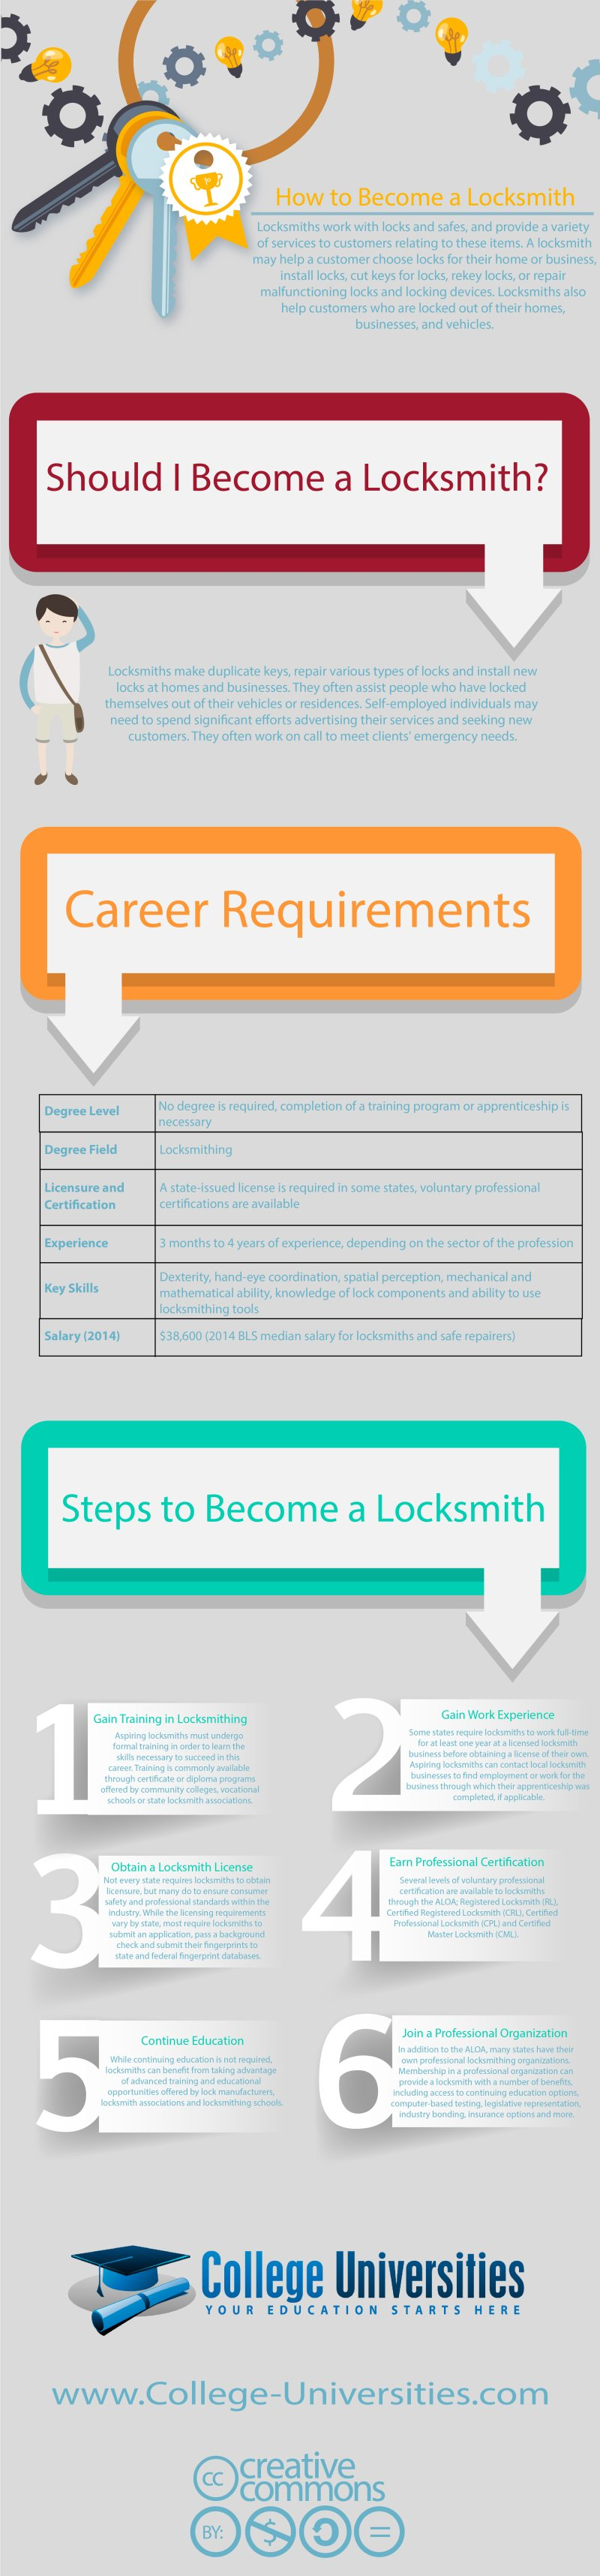 How%20to%20Become%20a%20Locksmith.jpg